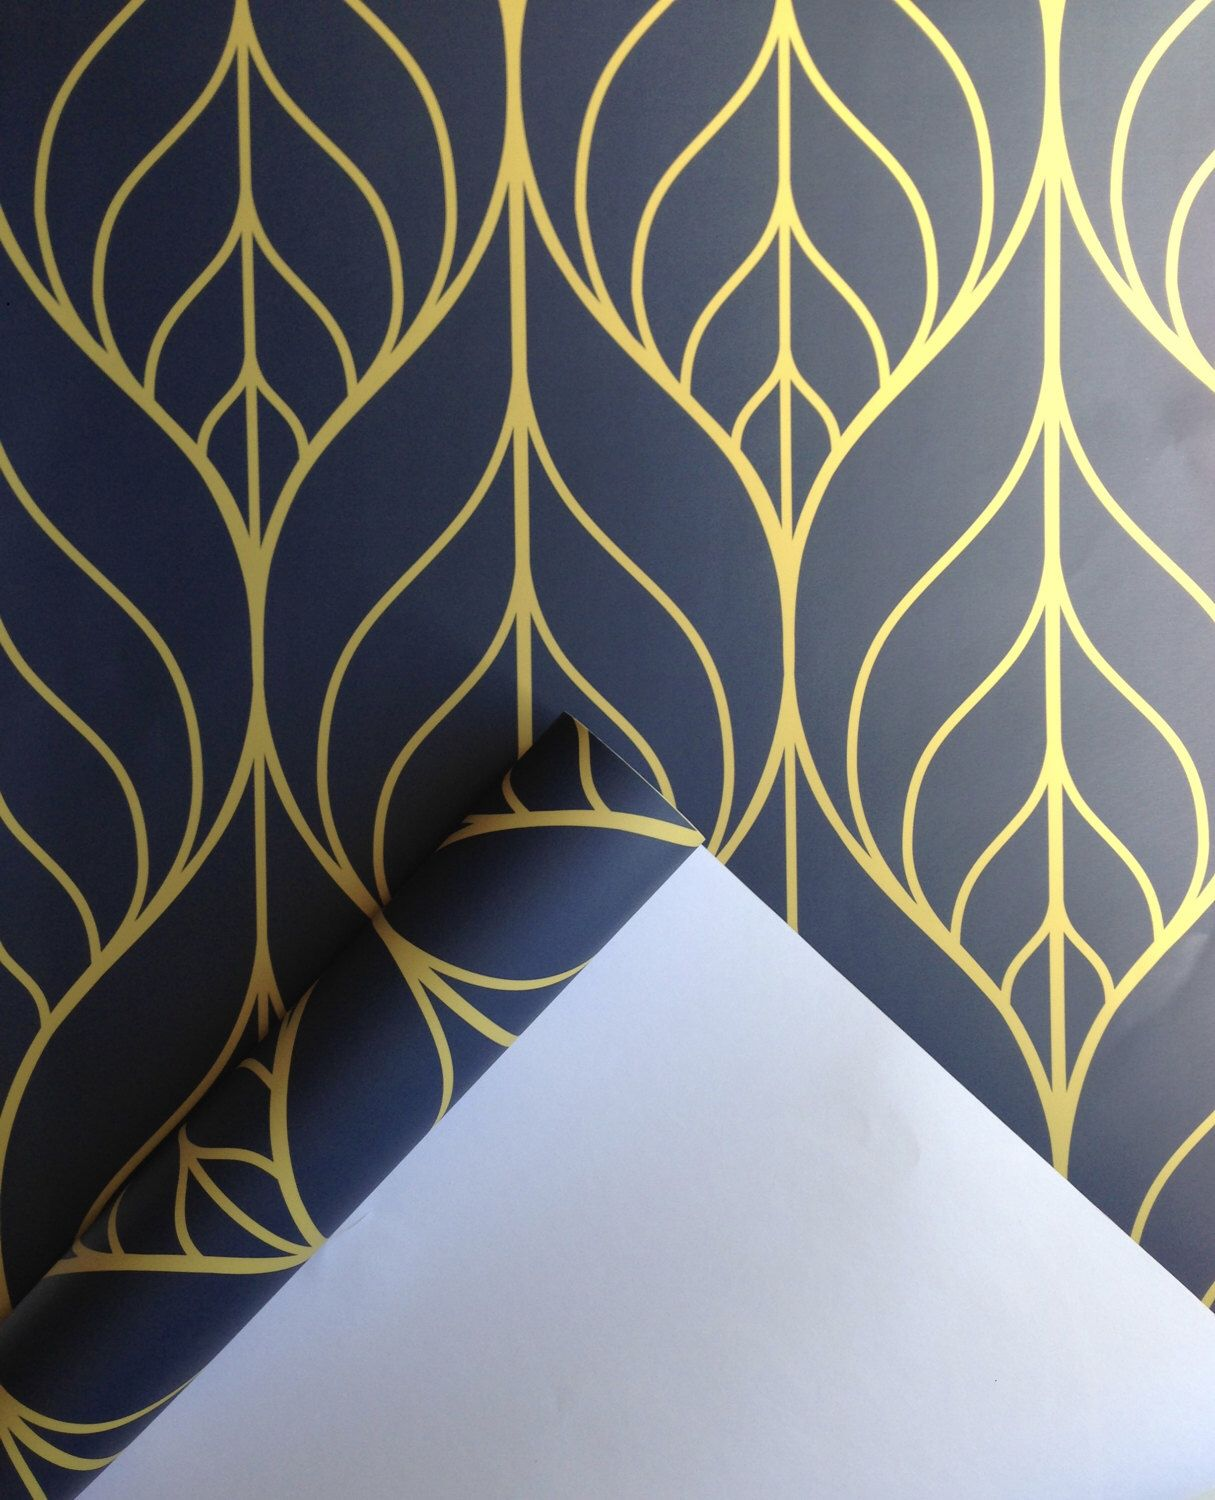 Removable Wallpaper Peel And Stick Wallpaper Leaf Wallpaper Etsy Navy Wallpaper Peel And Stick Wallpaper Leaf Wallpaper